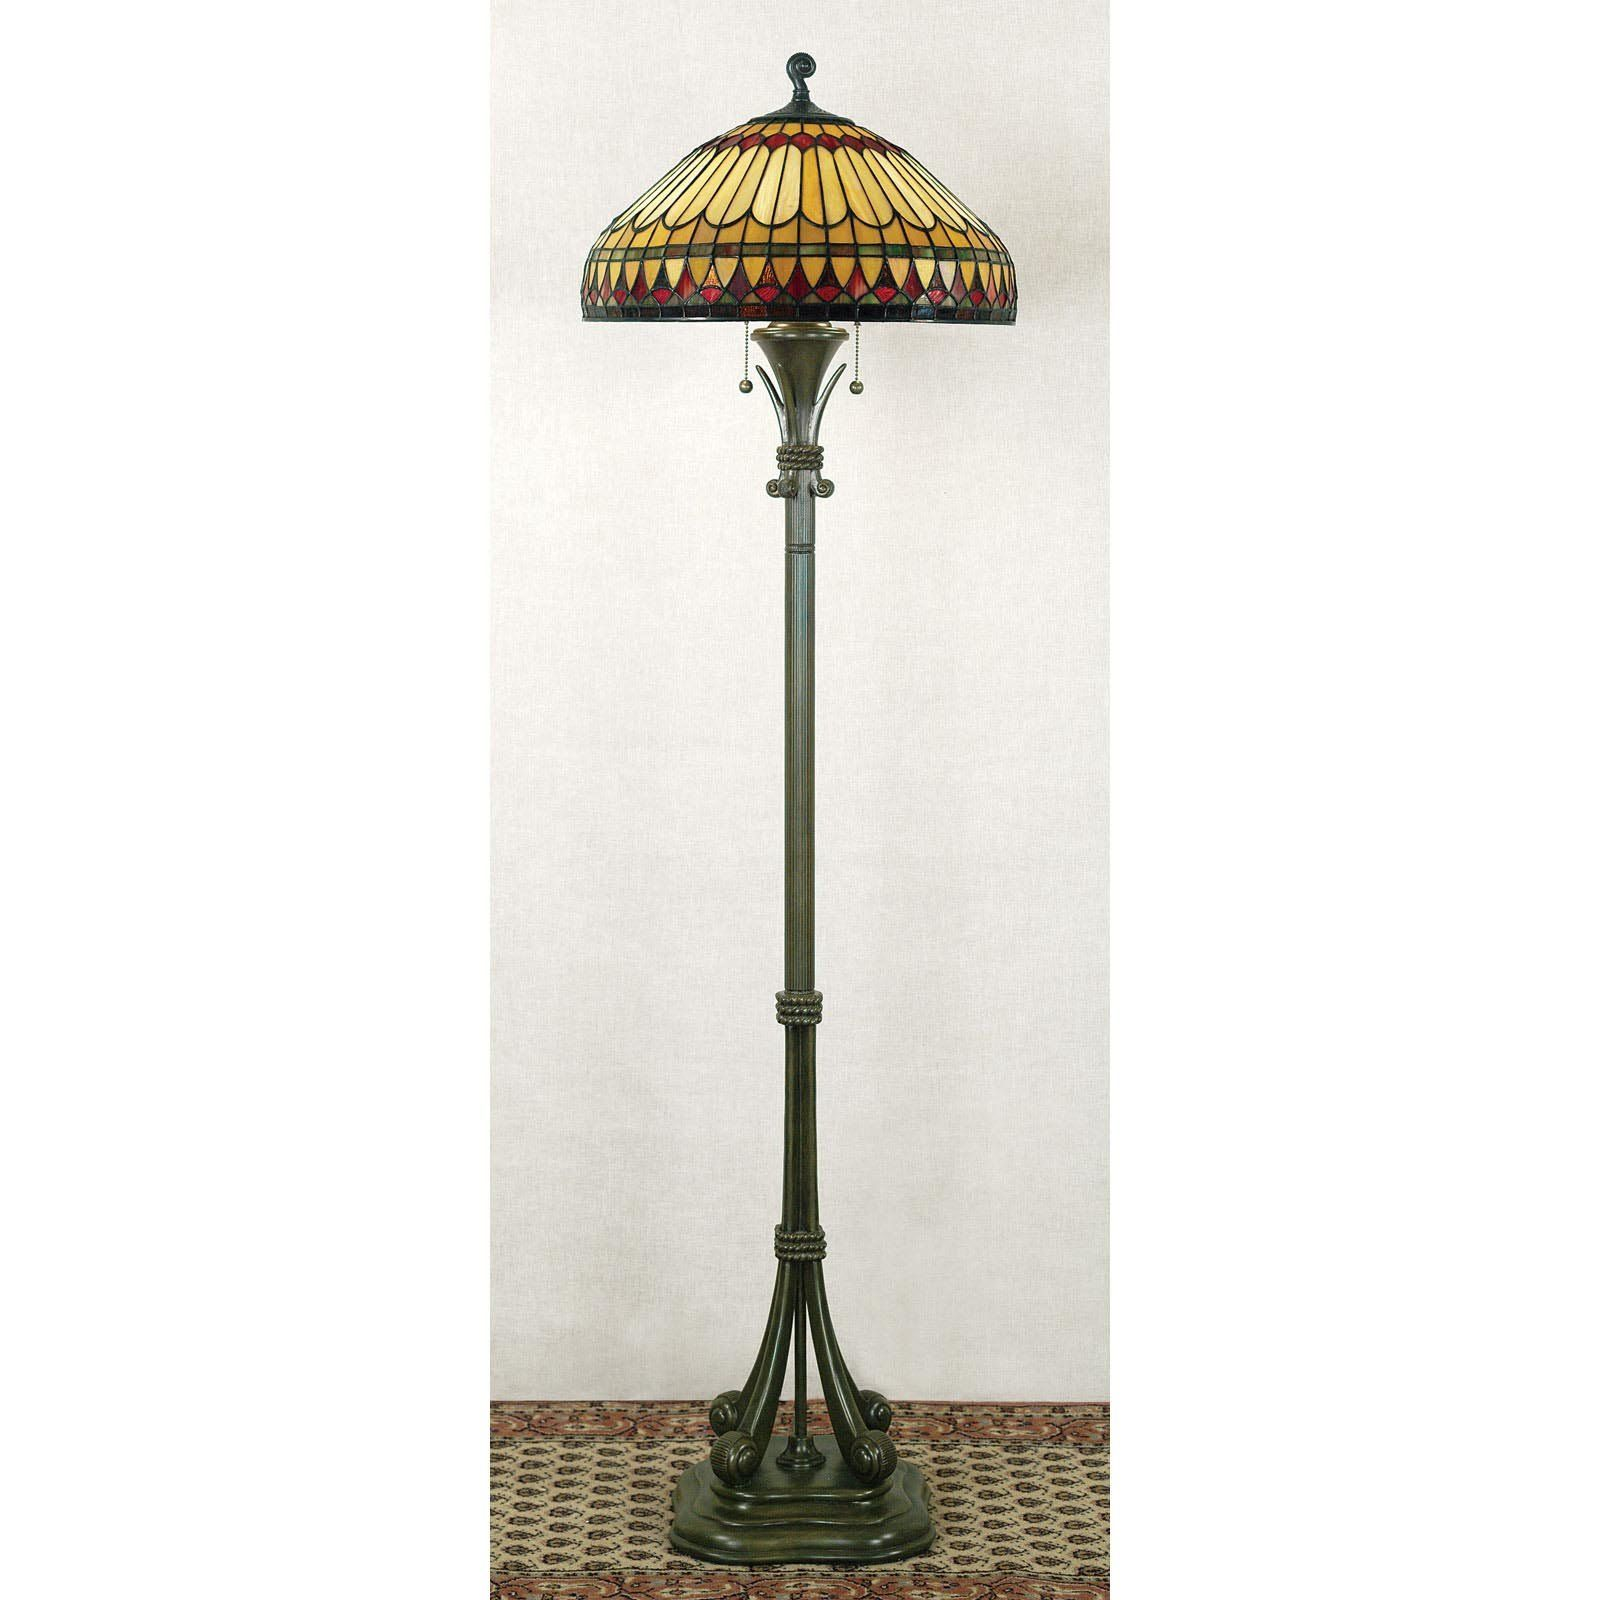 Tiffany Lamps For Sale Tiffany Floor Lamps Clearance Sale - Floor lamps on sale